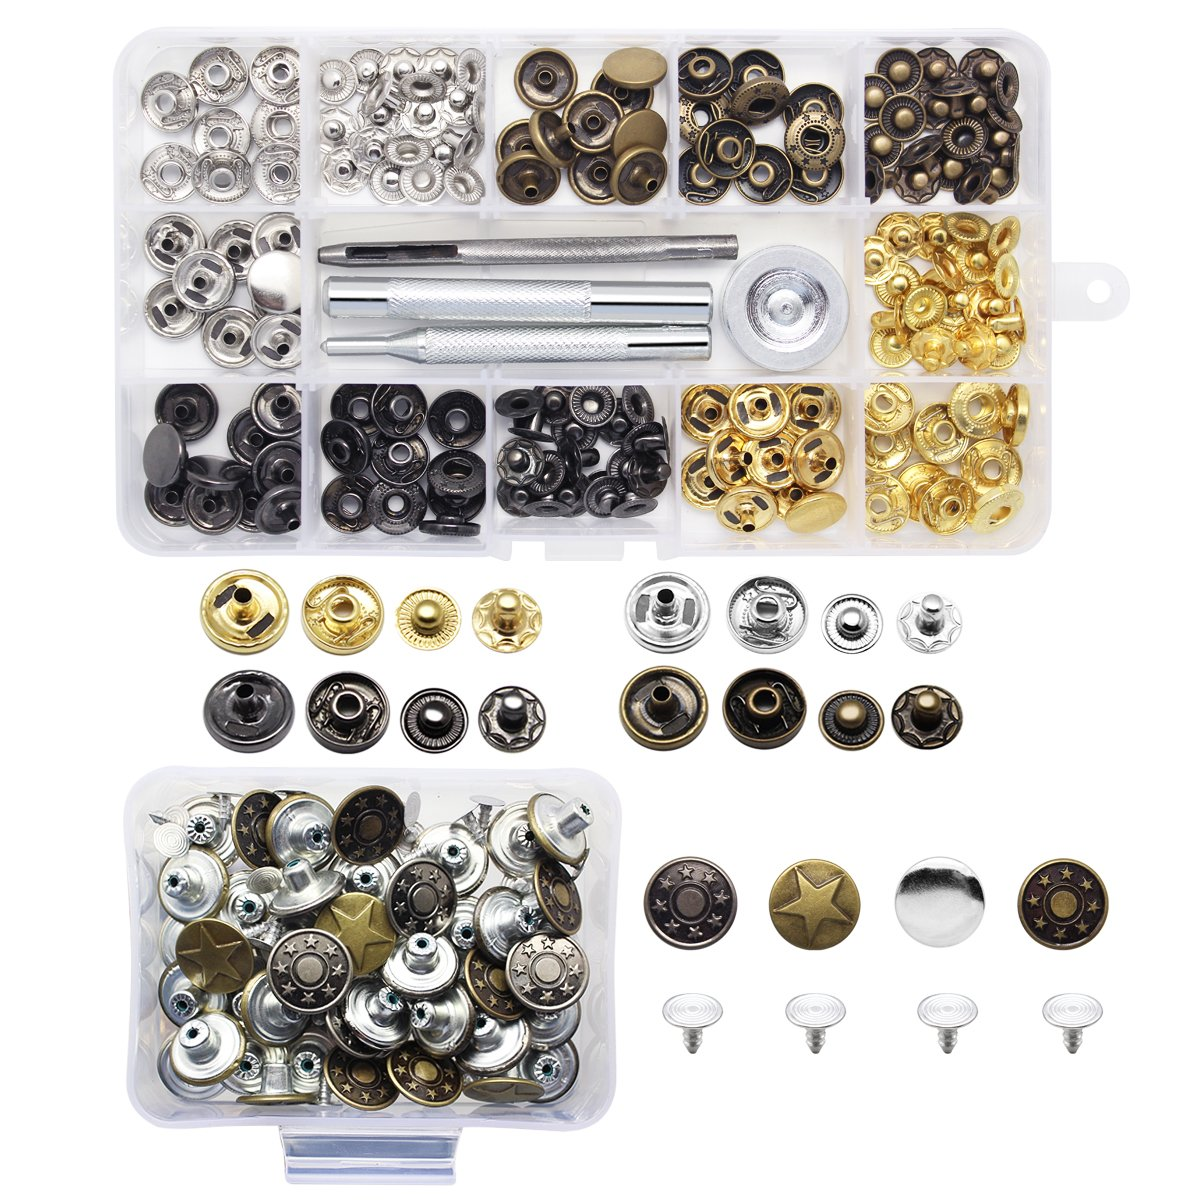 Yotako 40x 12mm Jeans Button Tack Buttons Metal Replacement Kit + 40x 12mm Metal No Sewing Popper Button Snap Fasteners Kit For Leather Clothing Wallet 4337006087